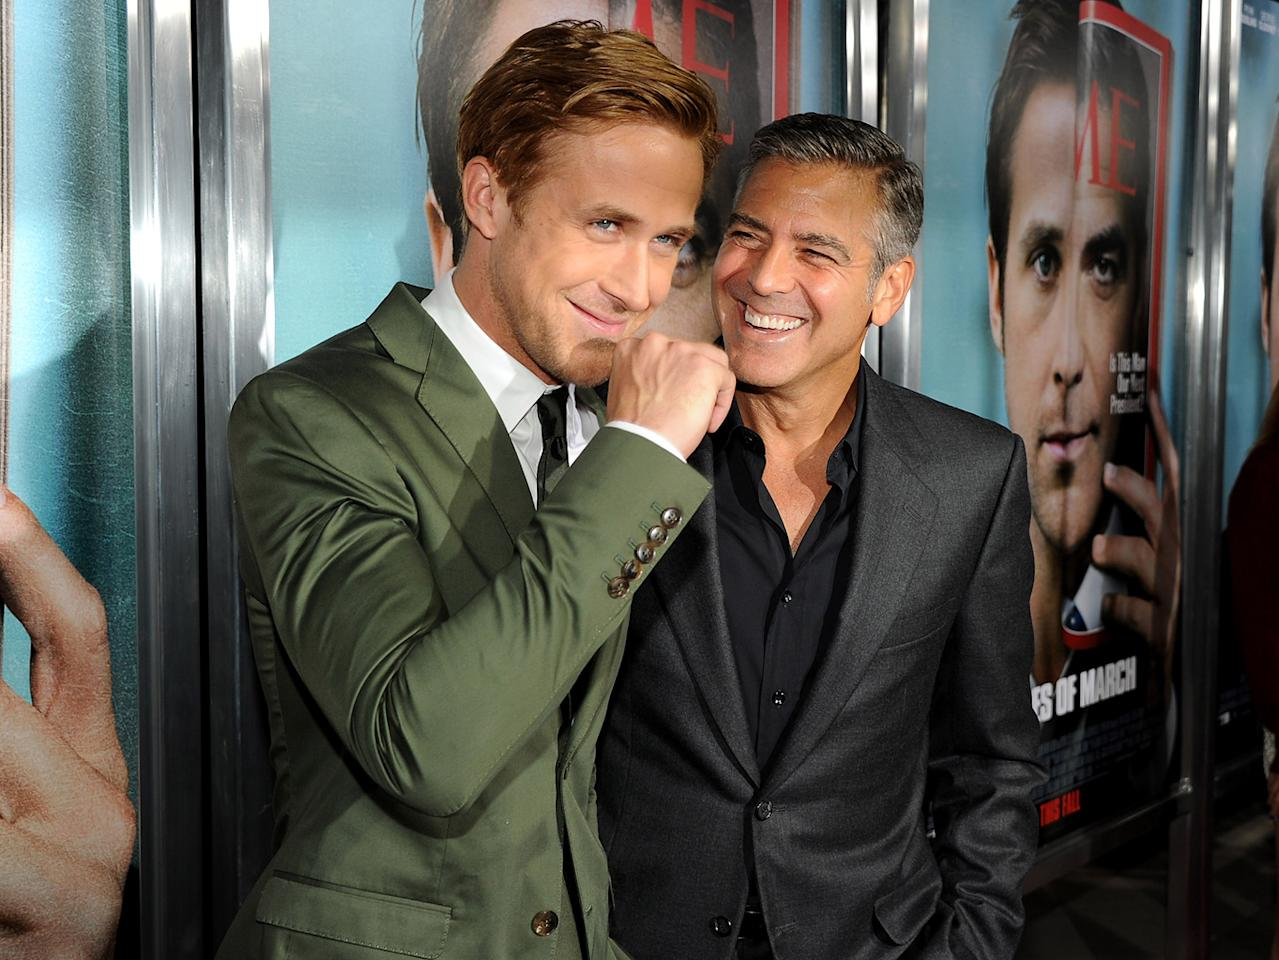 "<a href=""http://movies.yahoo.com/movie/contributor/1804035474"">Ryan Gosling</a> and <a href=""http://movies.yahoo.com/movie/contributor/1800019715"">George Clooney</a> at the Los Angeles premiere of <a href=""http://movies.yahoo.com/movie/1810155680/info"">The Ides of March</a> on September 27, 2011."